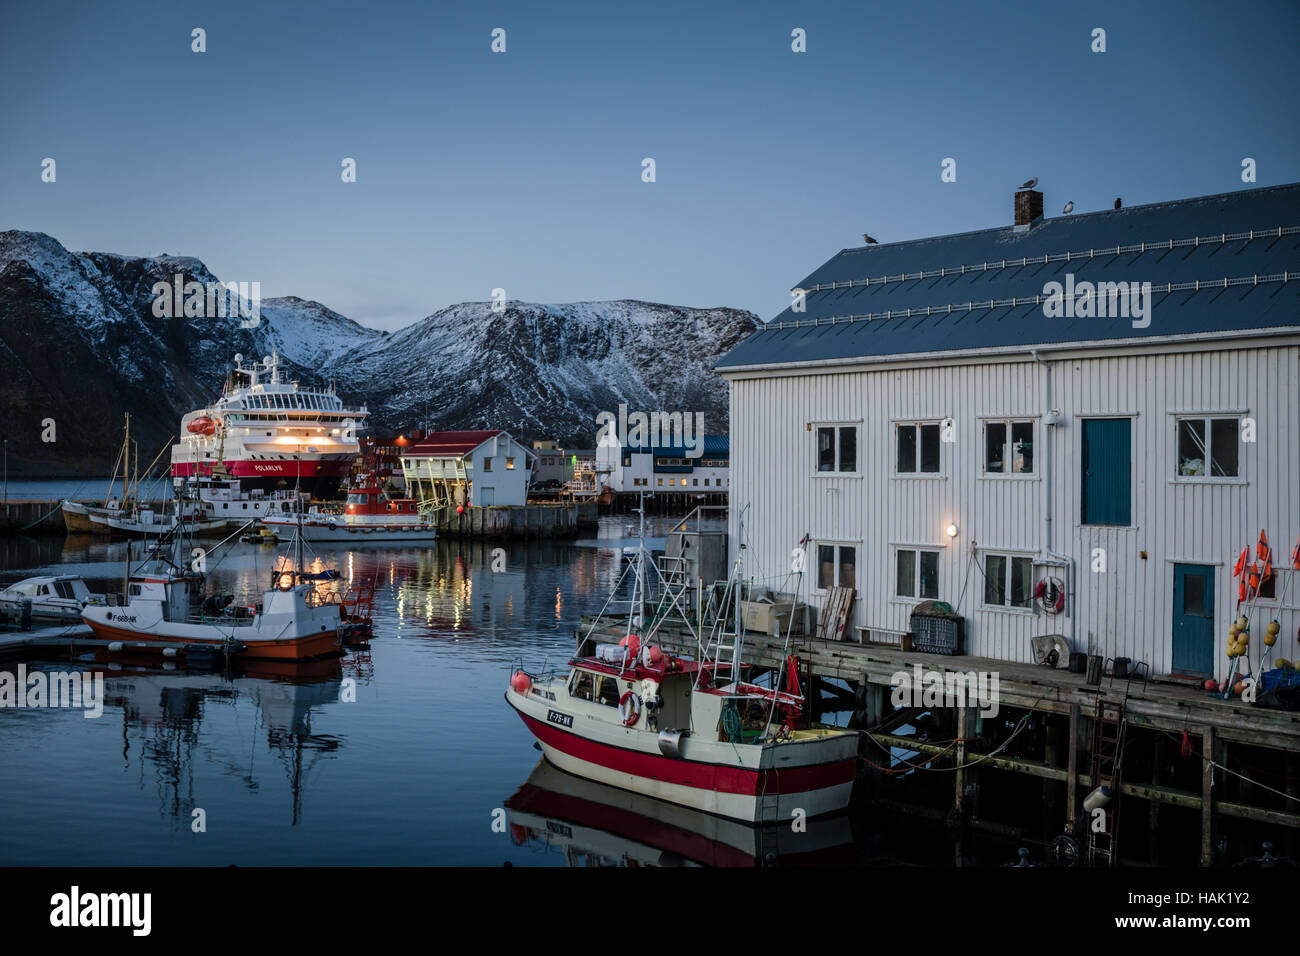 Hurtigruten docked in the  town of Honningsvag close to the North Cape in Arctic Norway. - Stock Image